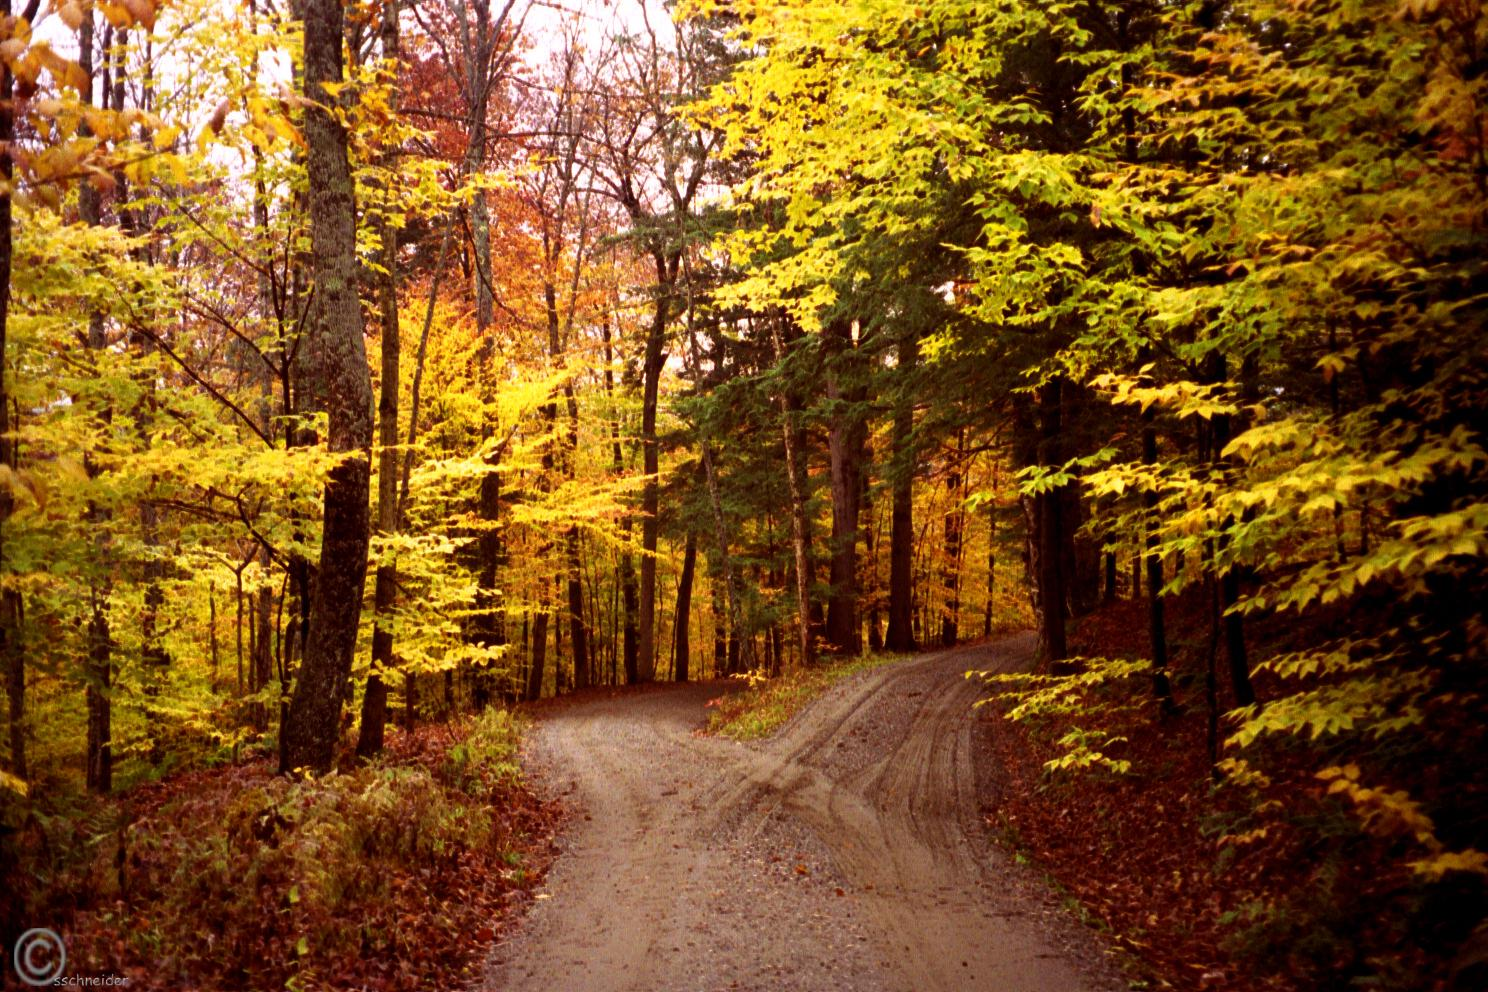 Jc poetry historyvault two roads diverged in a yellow wood sciox Choice Image